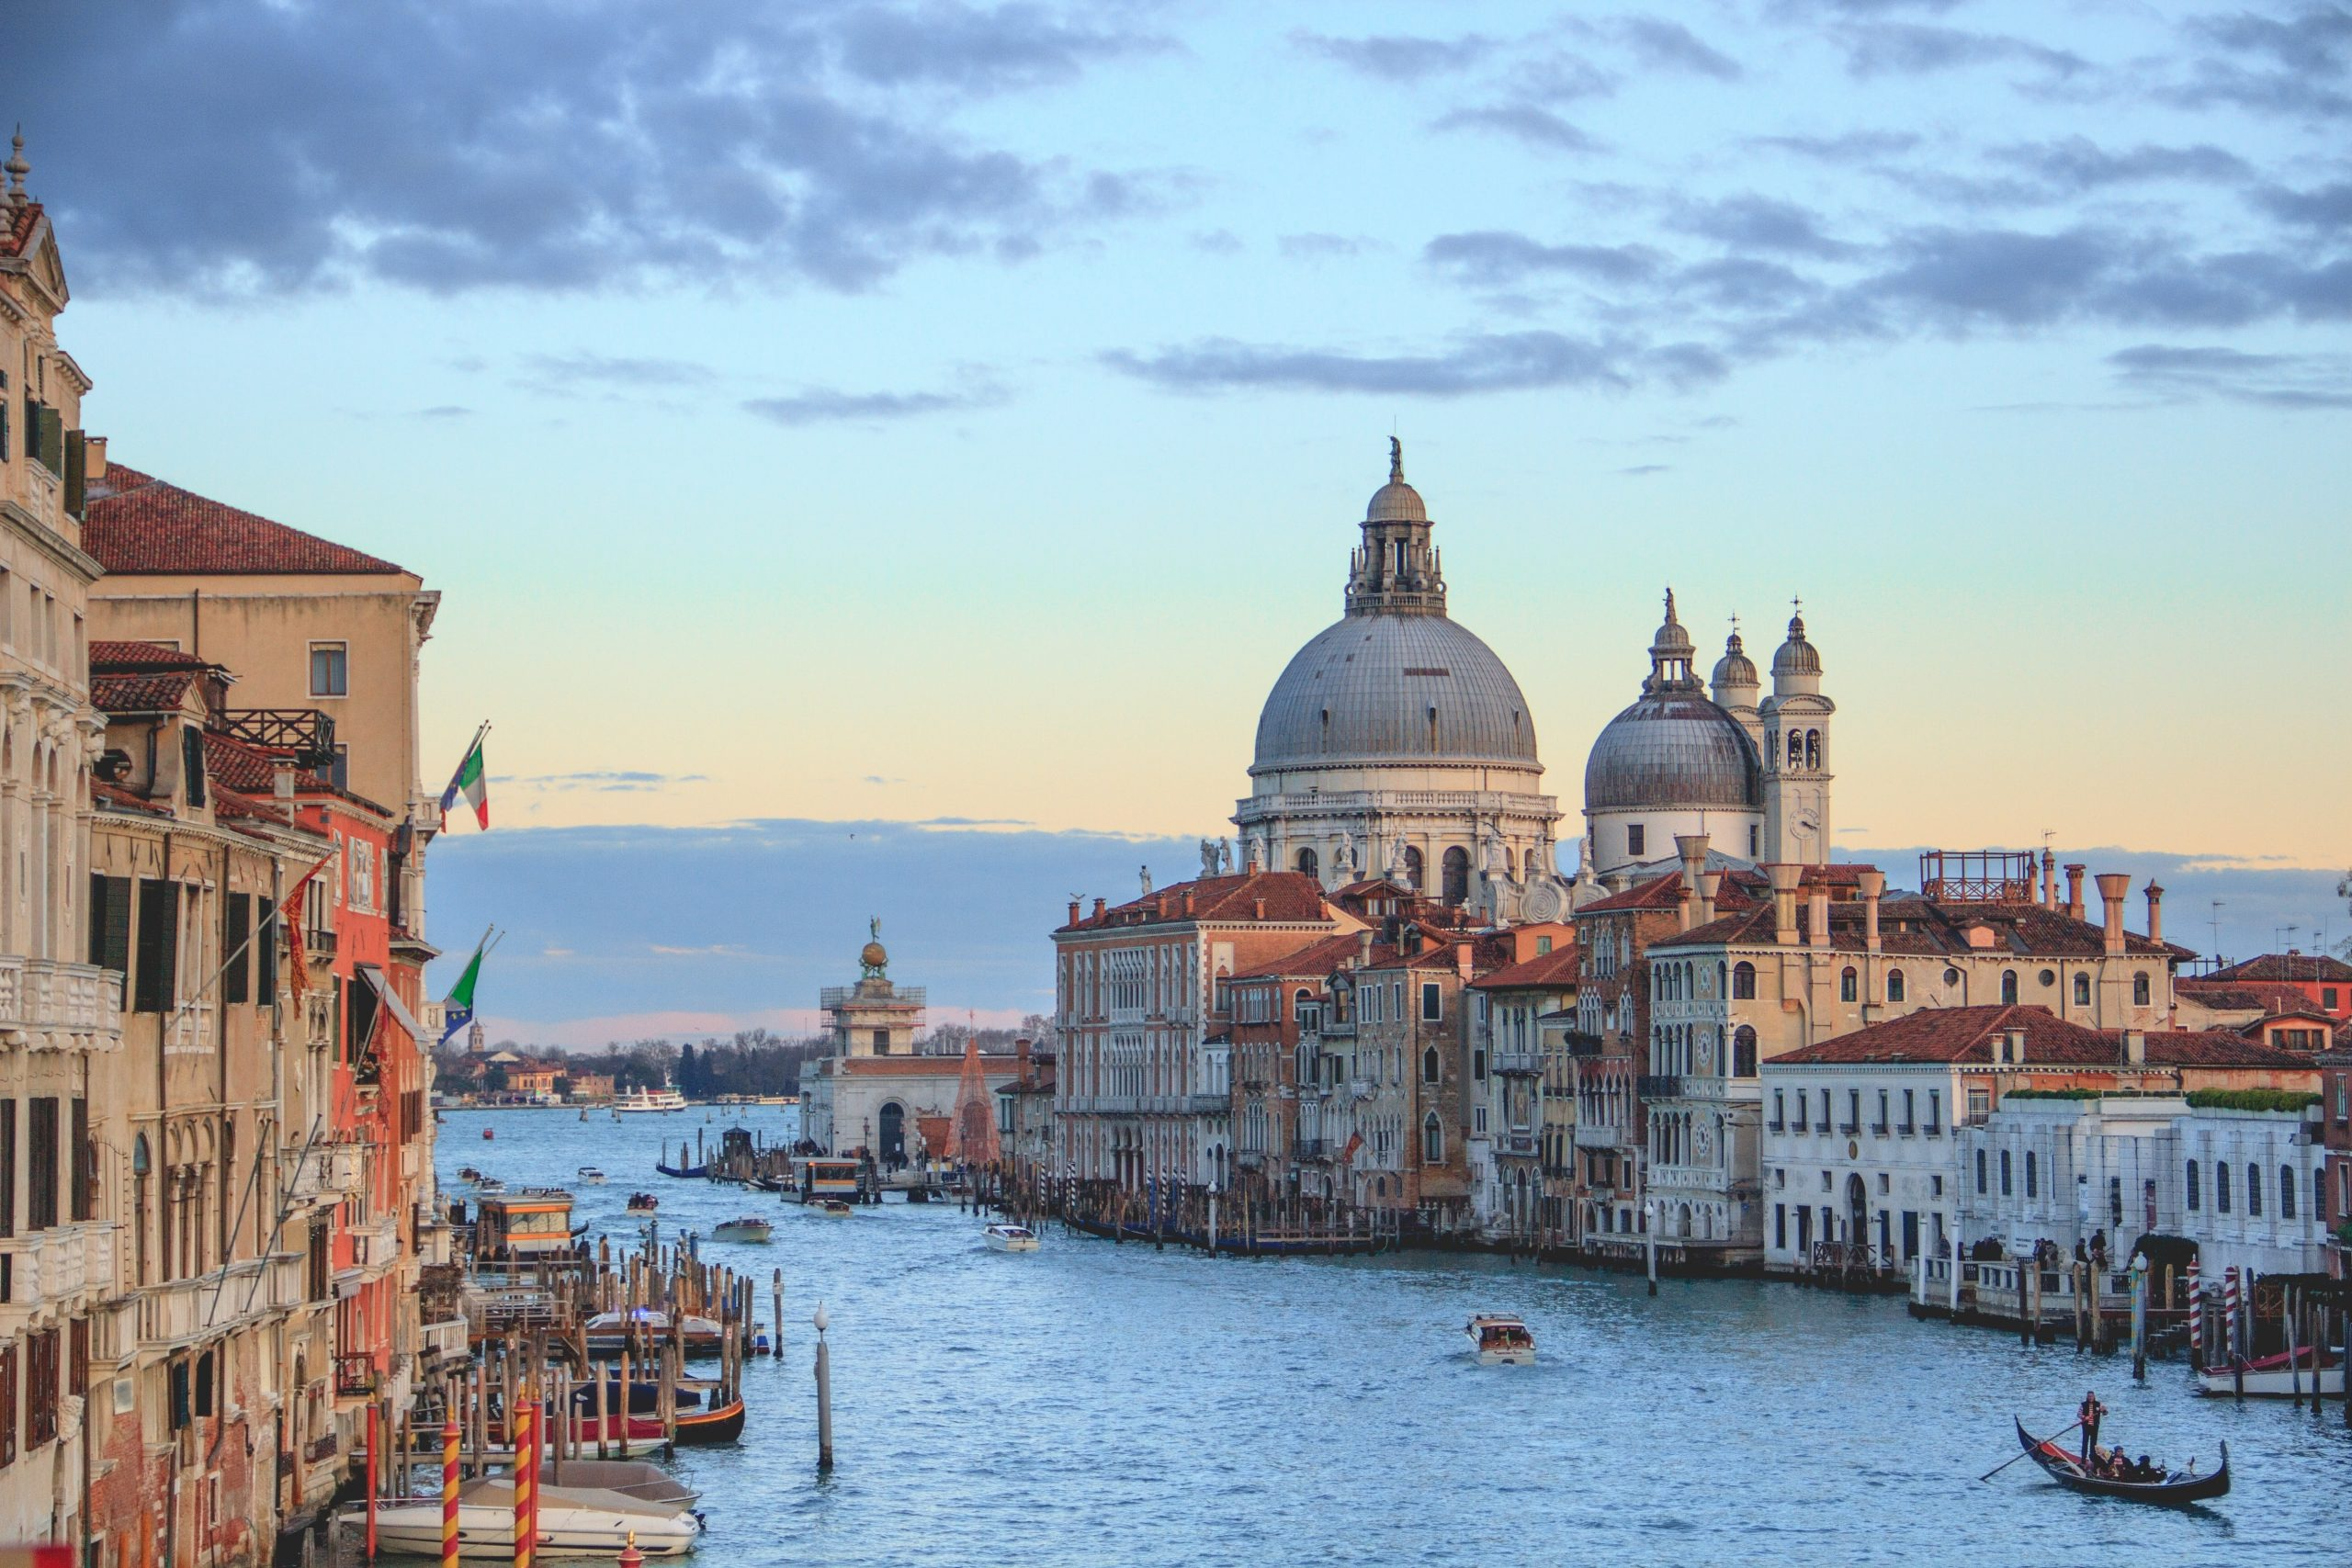 View of Venice